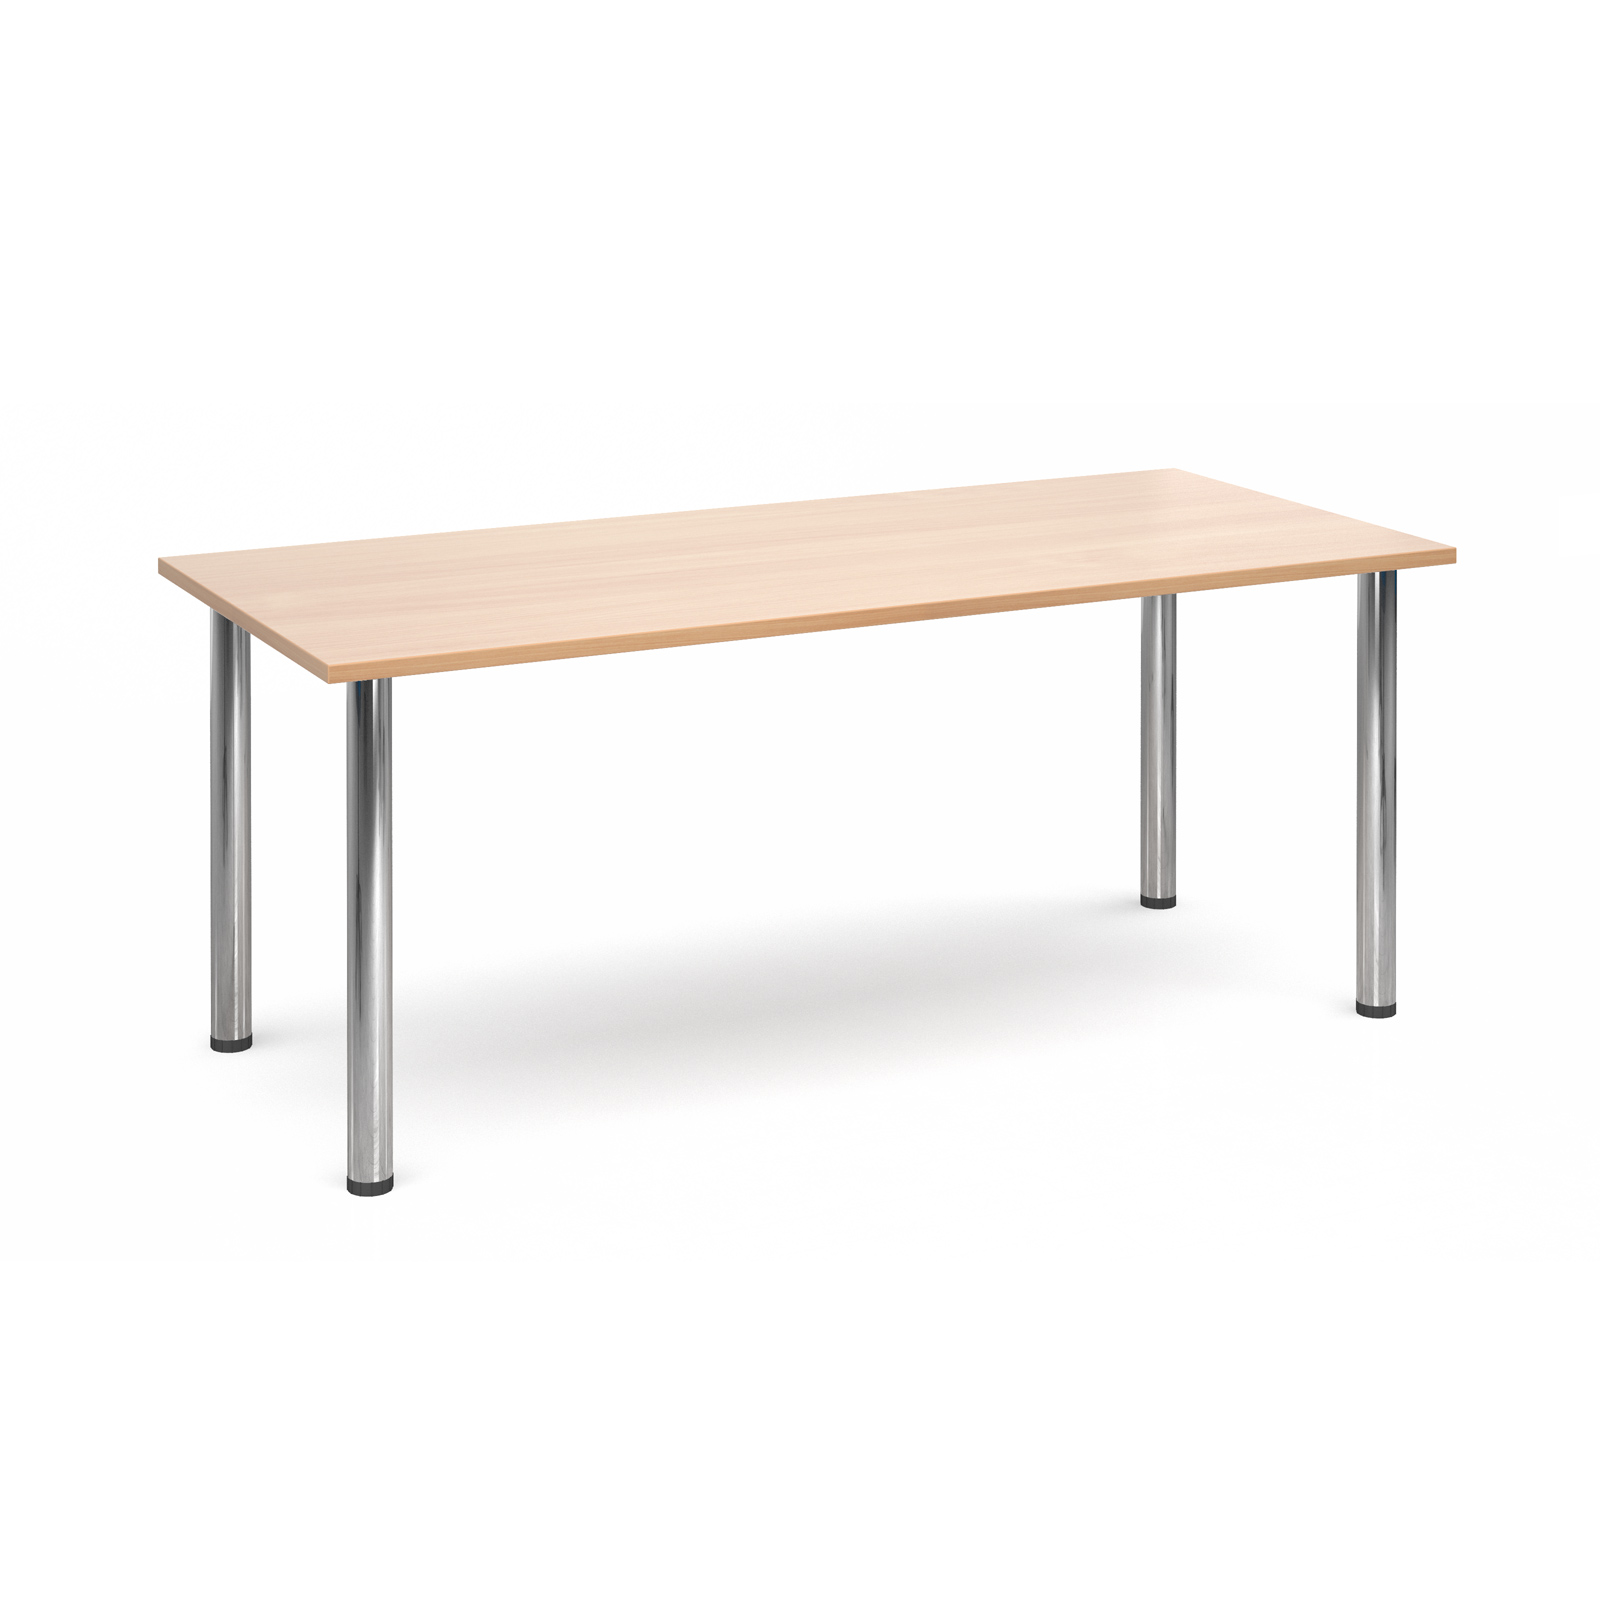 Rectangular deluxe chrome radial leg table 1800mm x 800mm - beech